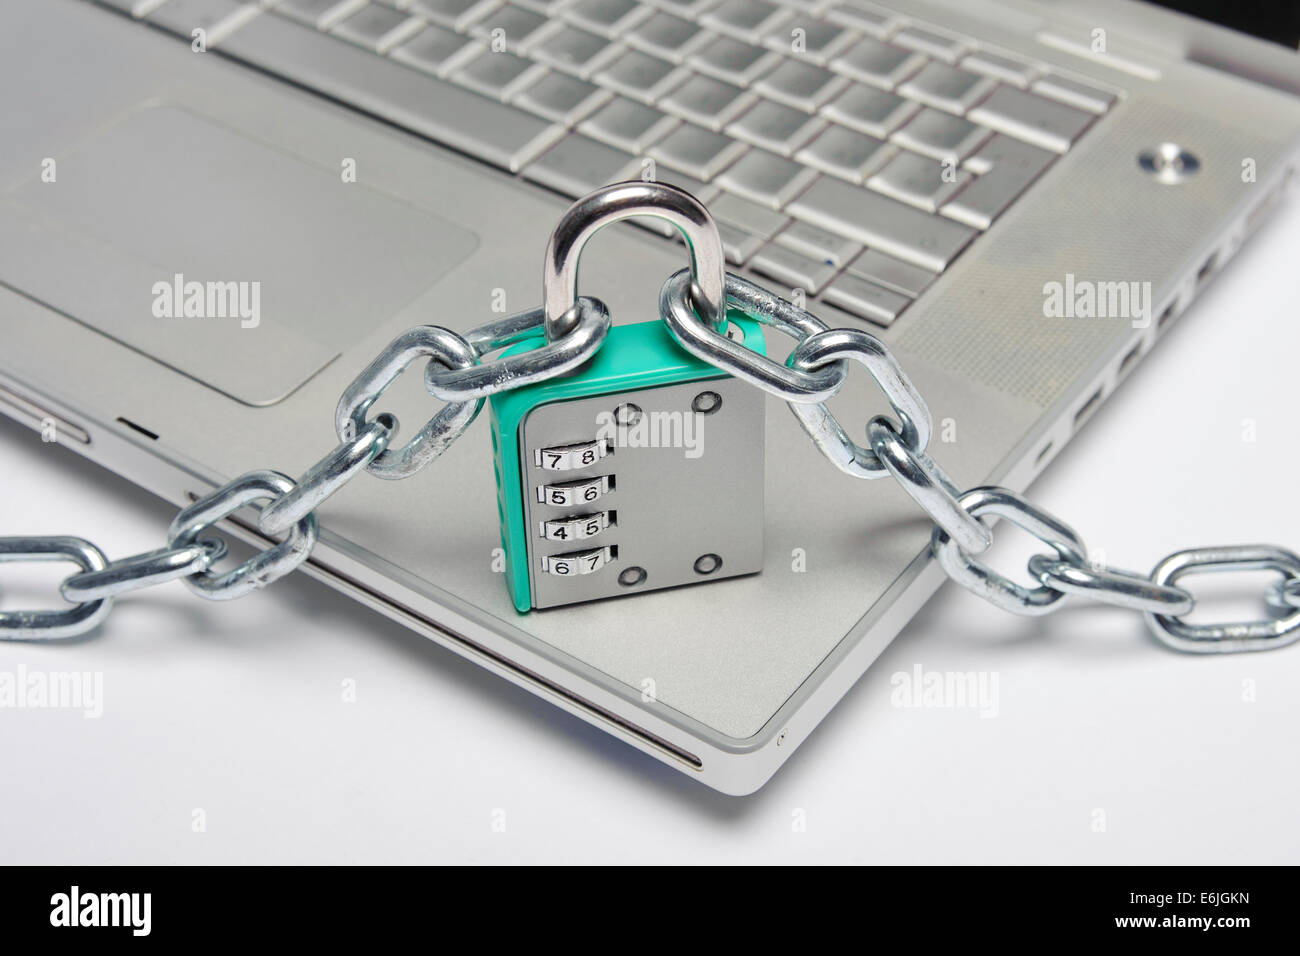 laptop safety against hacker intrusion - Stock Image